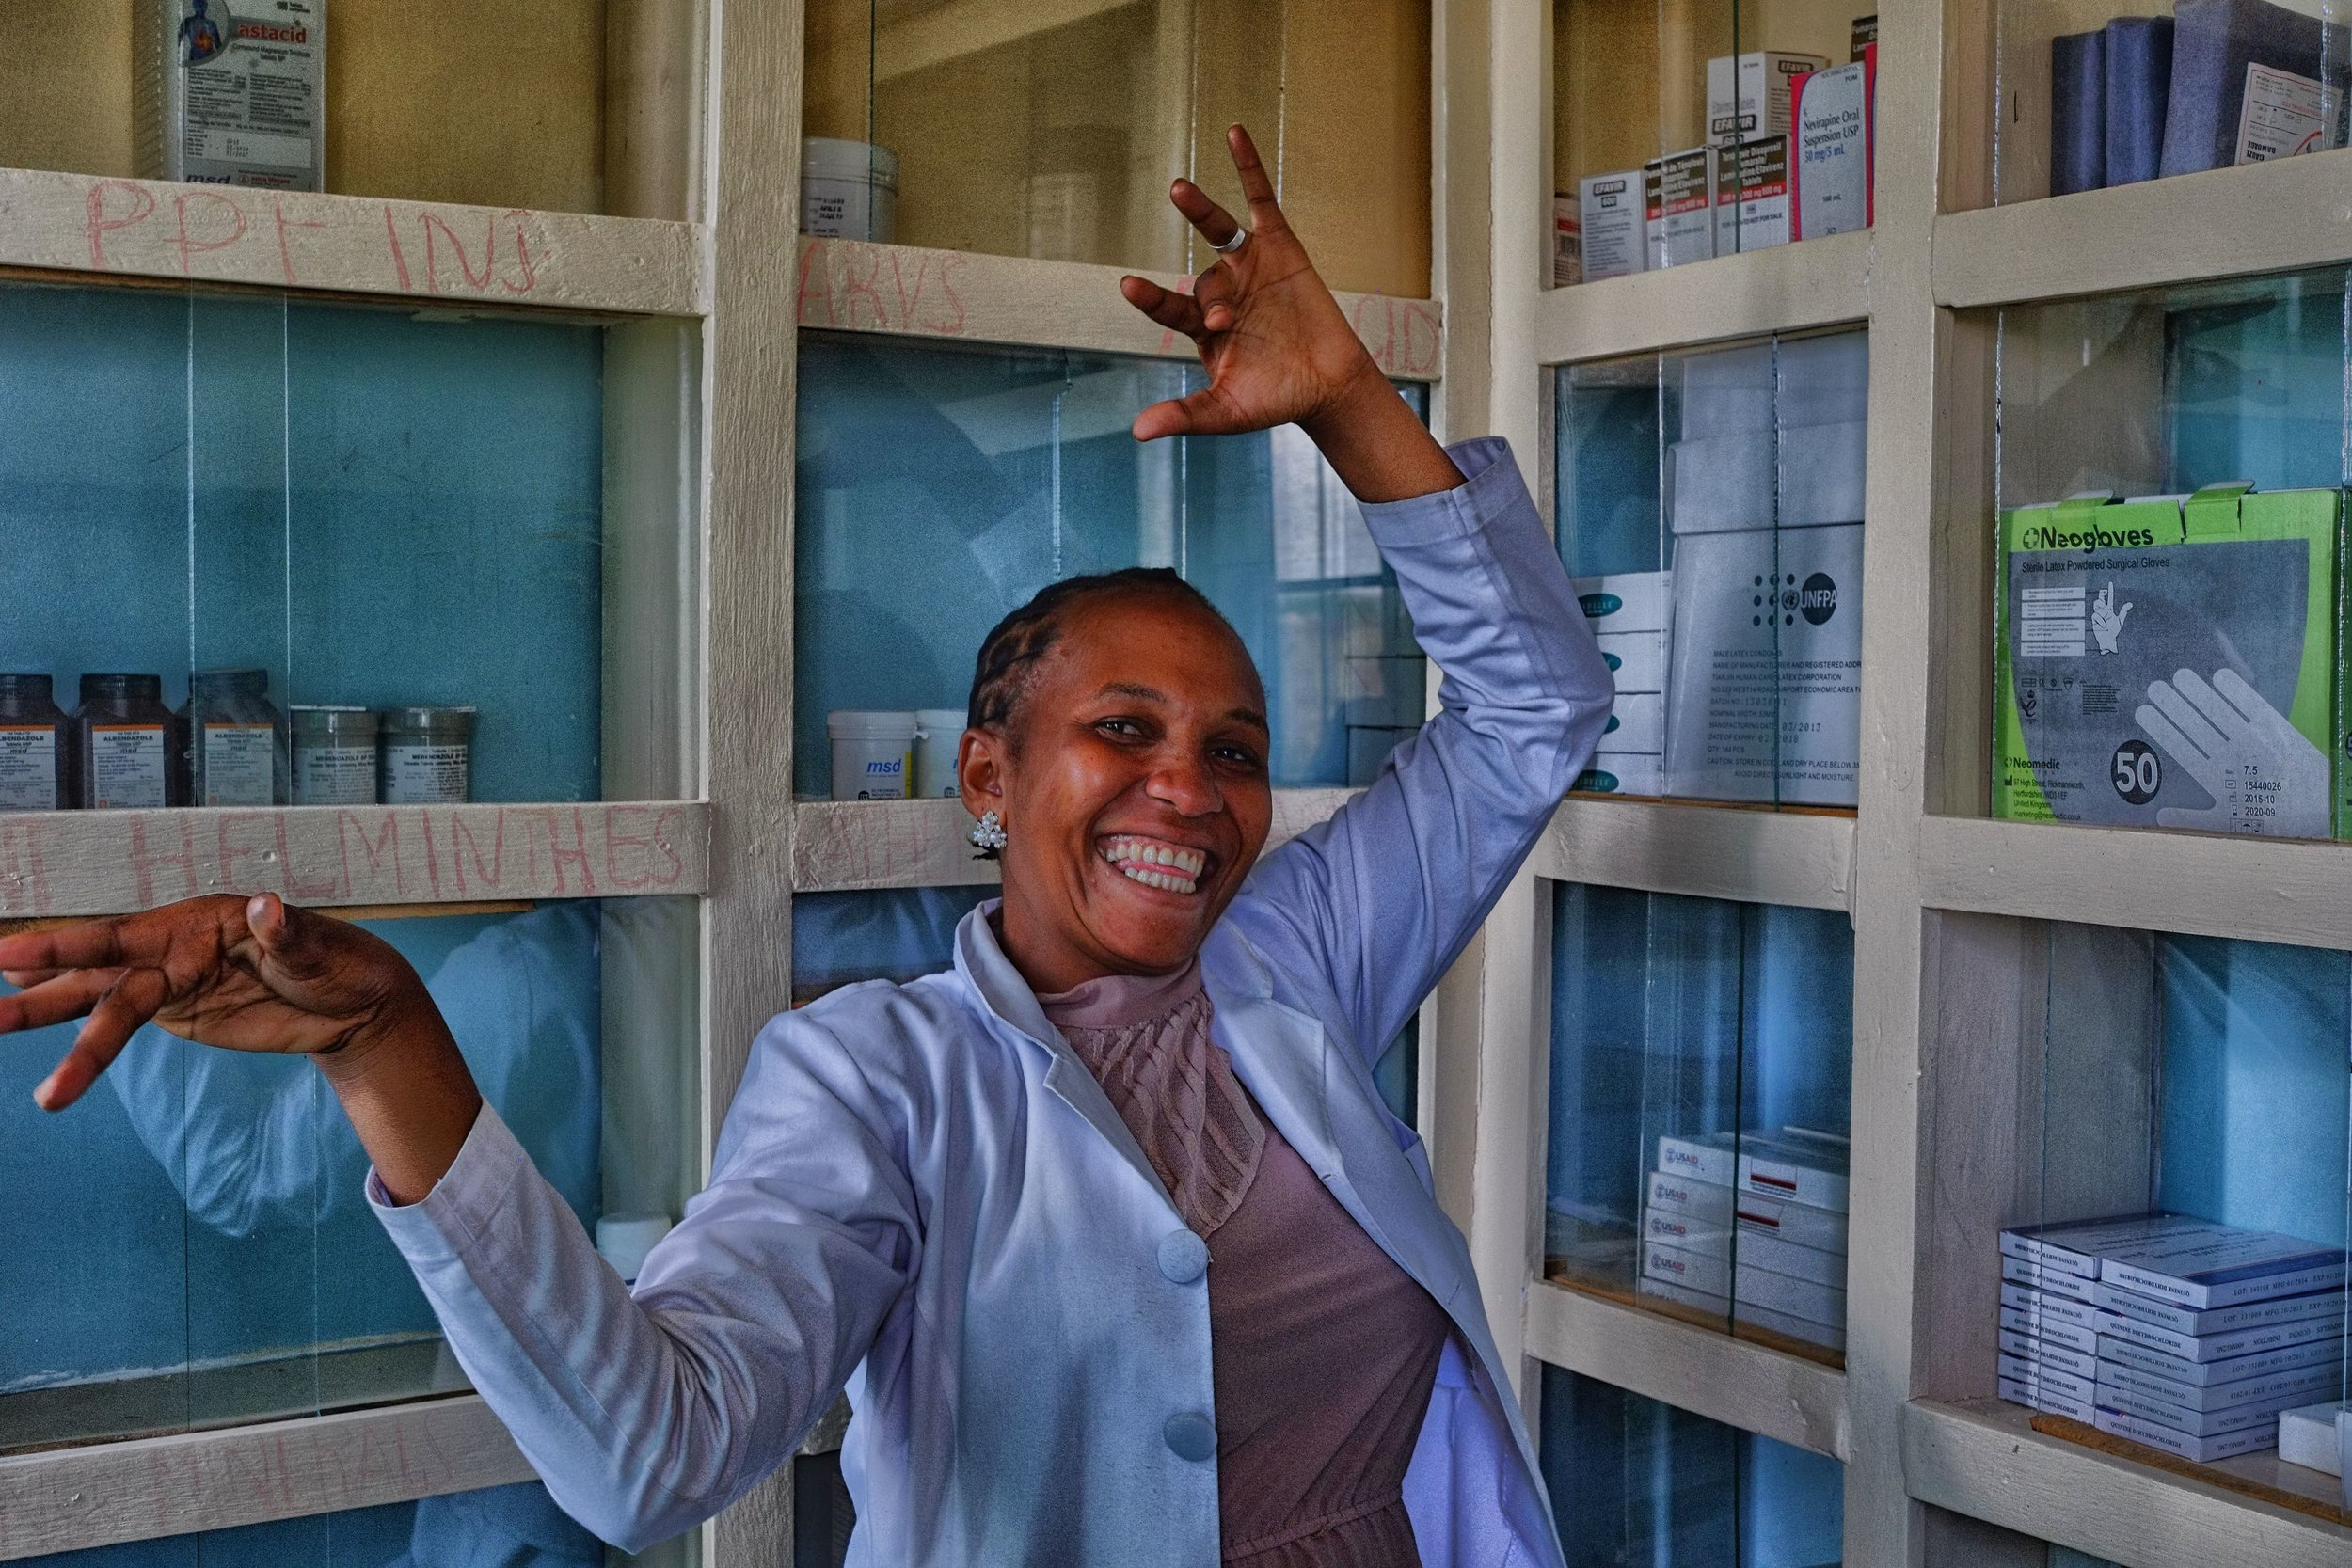 Our dispensary doctor is delighted with her new medical supply room.